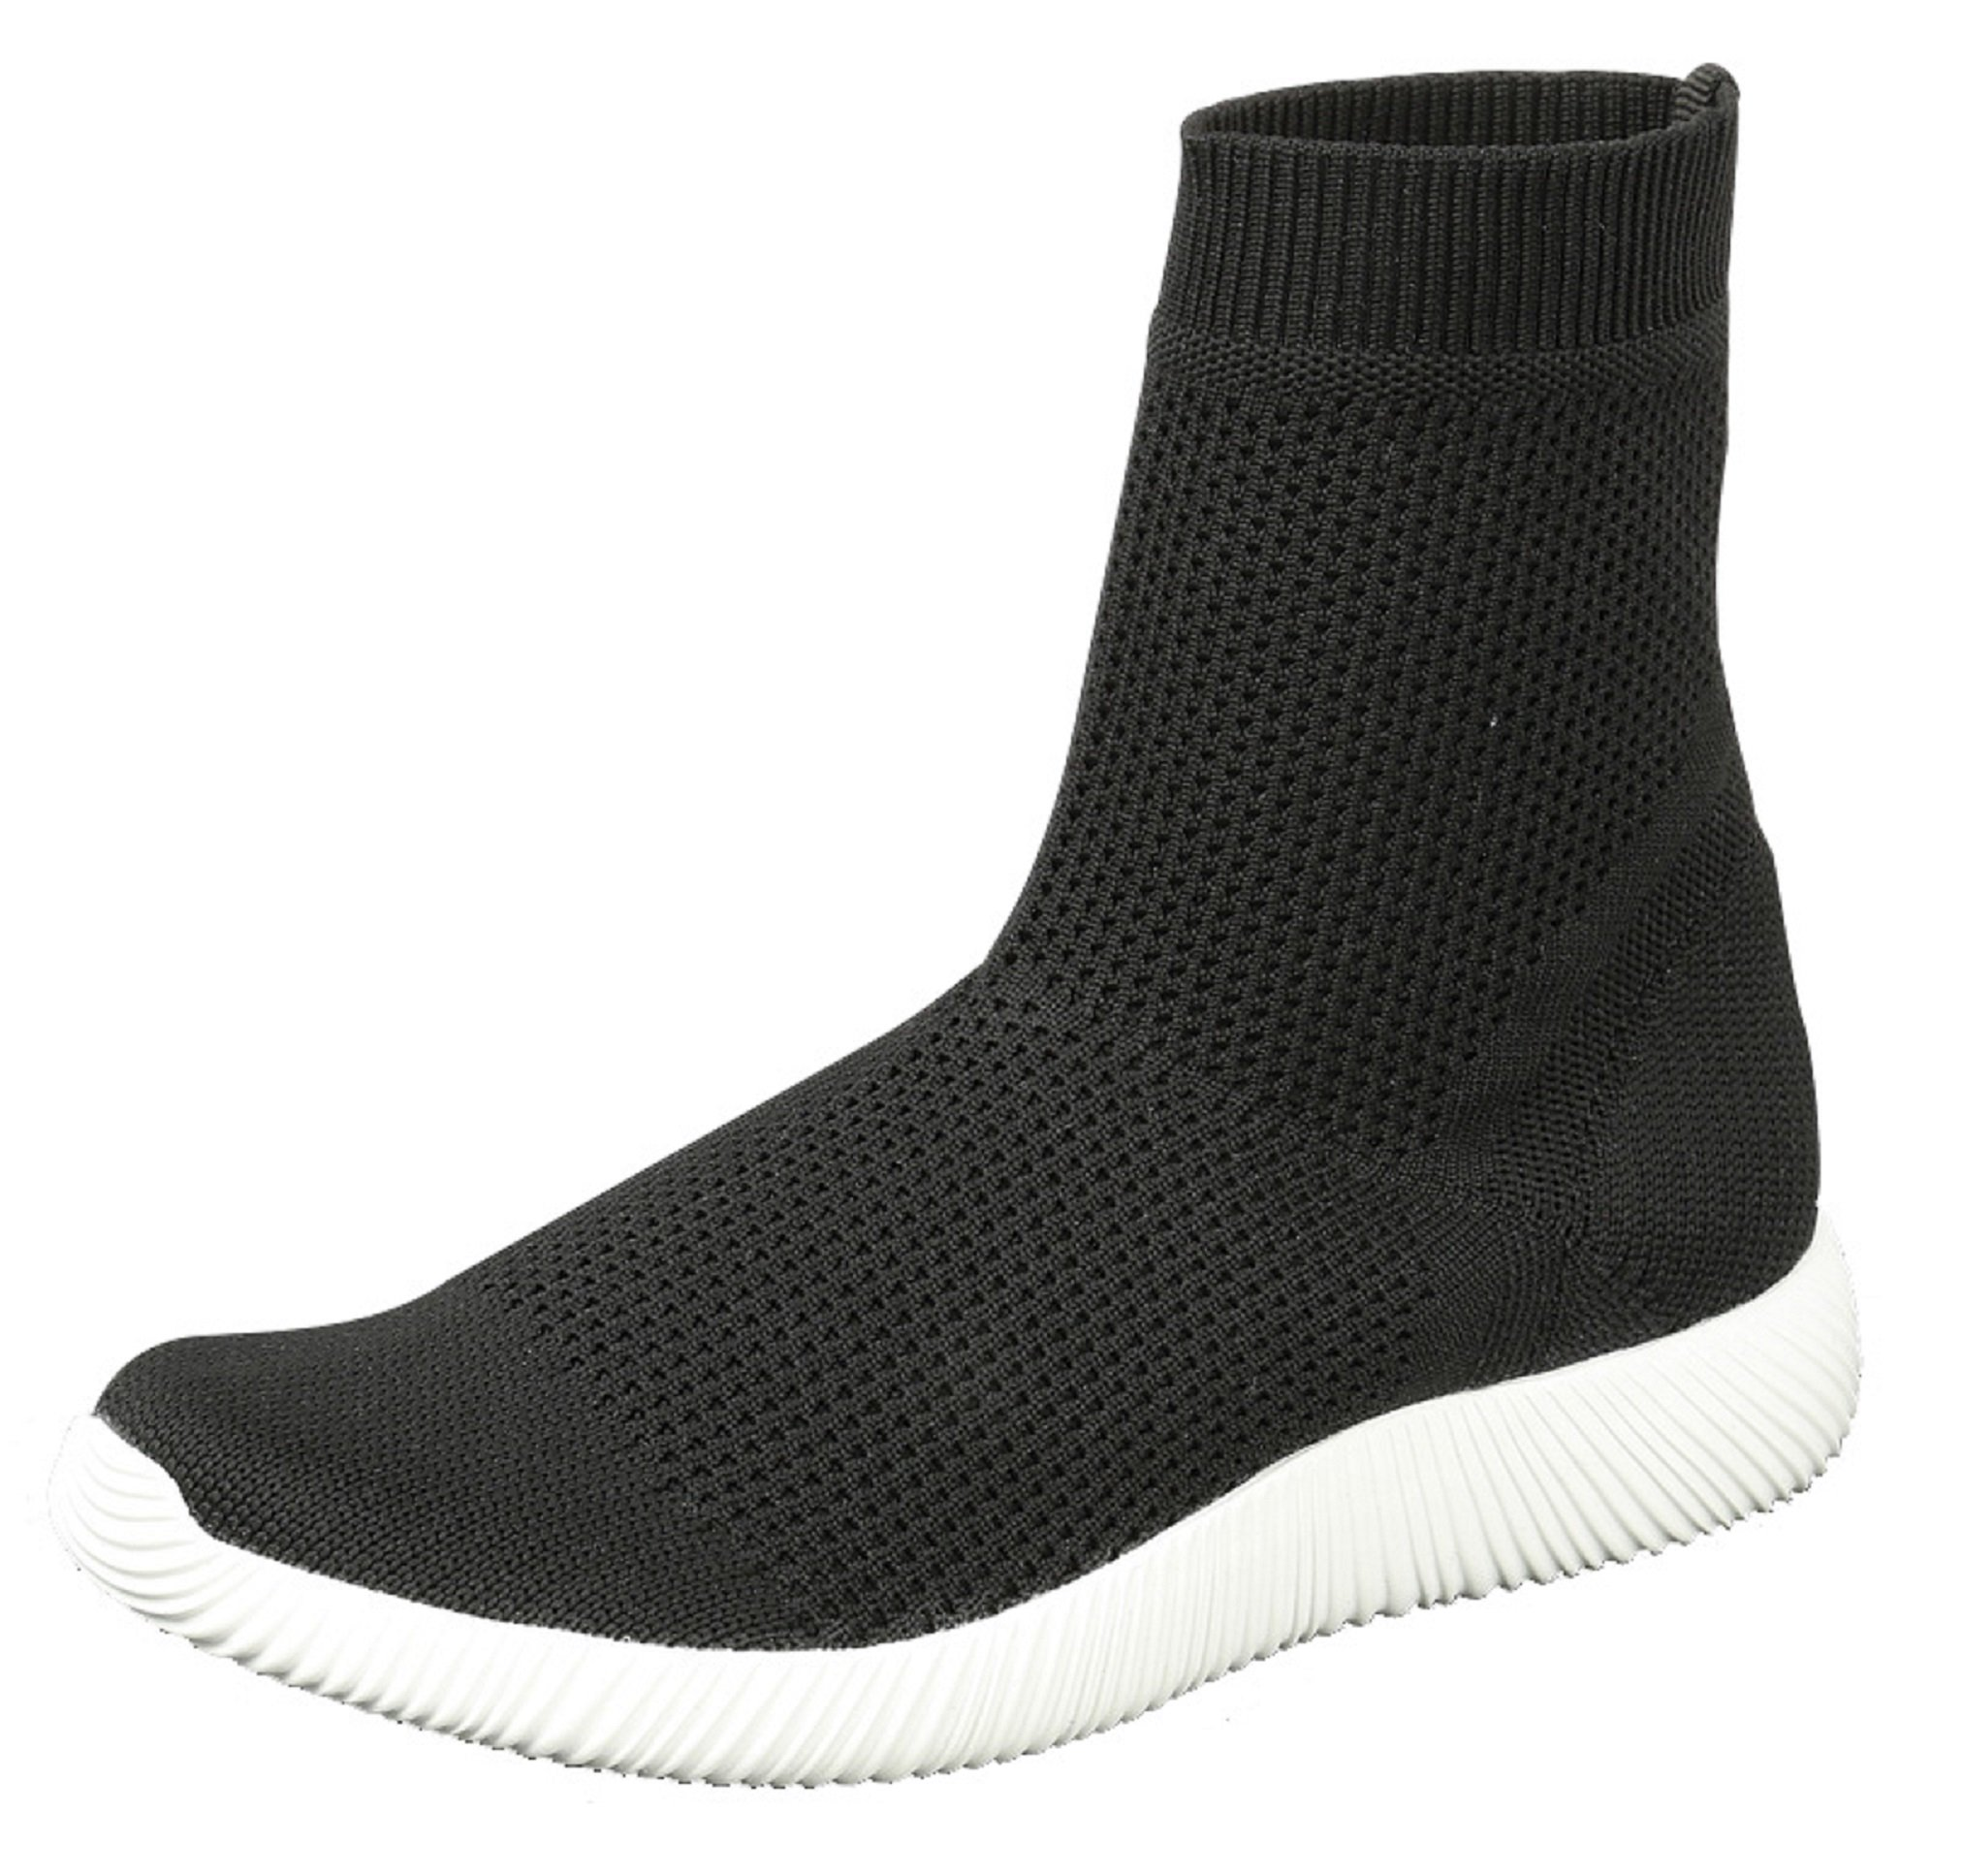 BDshoes Lena Junior Pull On Elastic Fabric Hightop High Top Fashion Sneaker Tennis Shoe for Little Girls (Assorted Colors) … (3, Black)